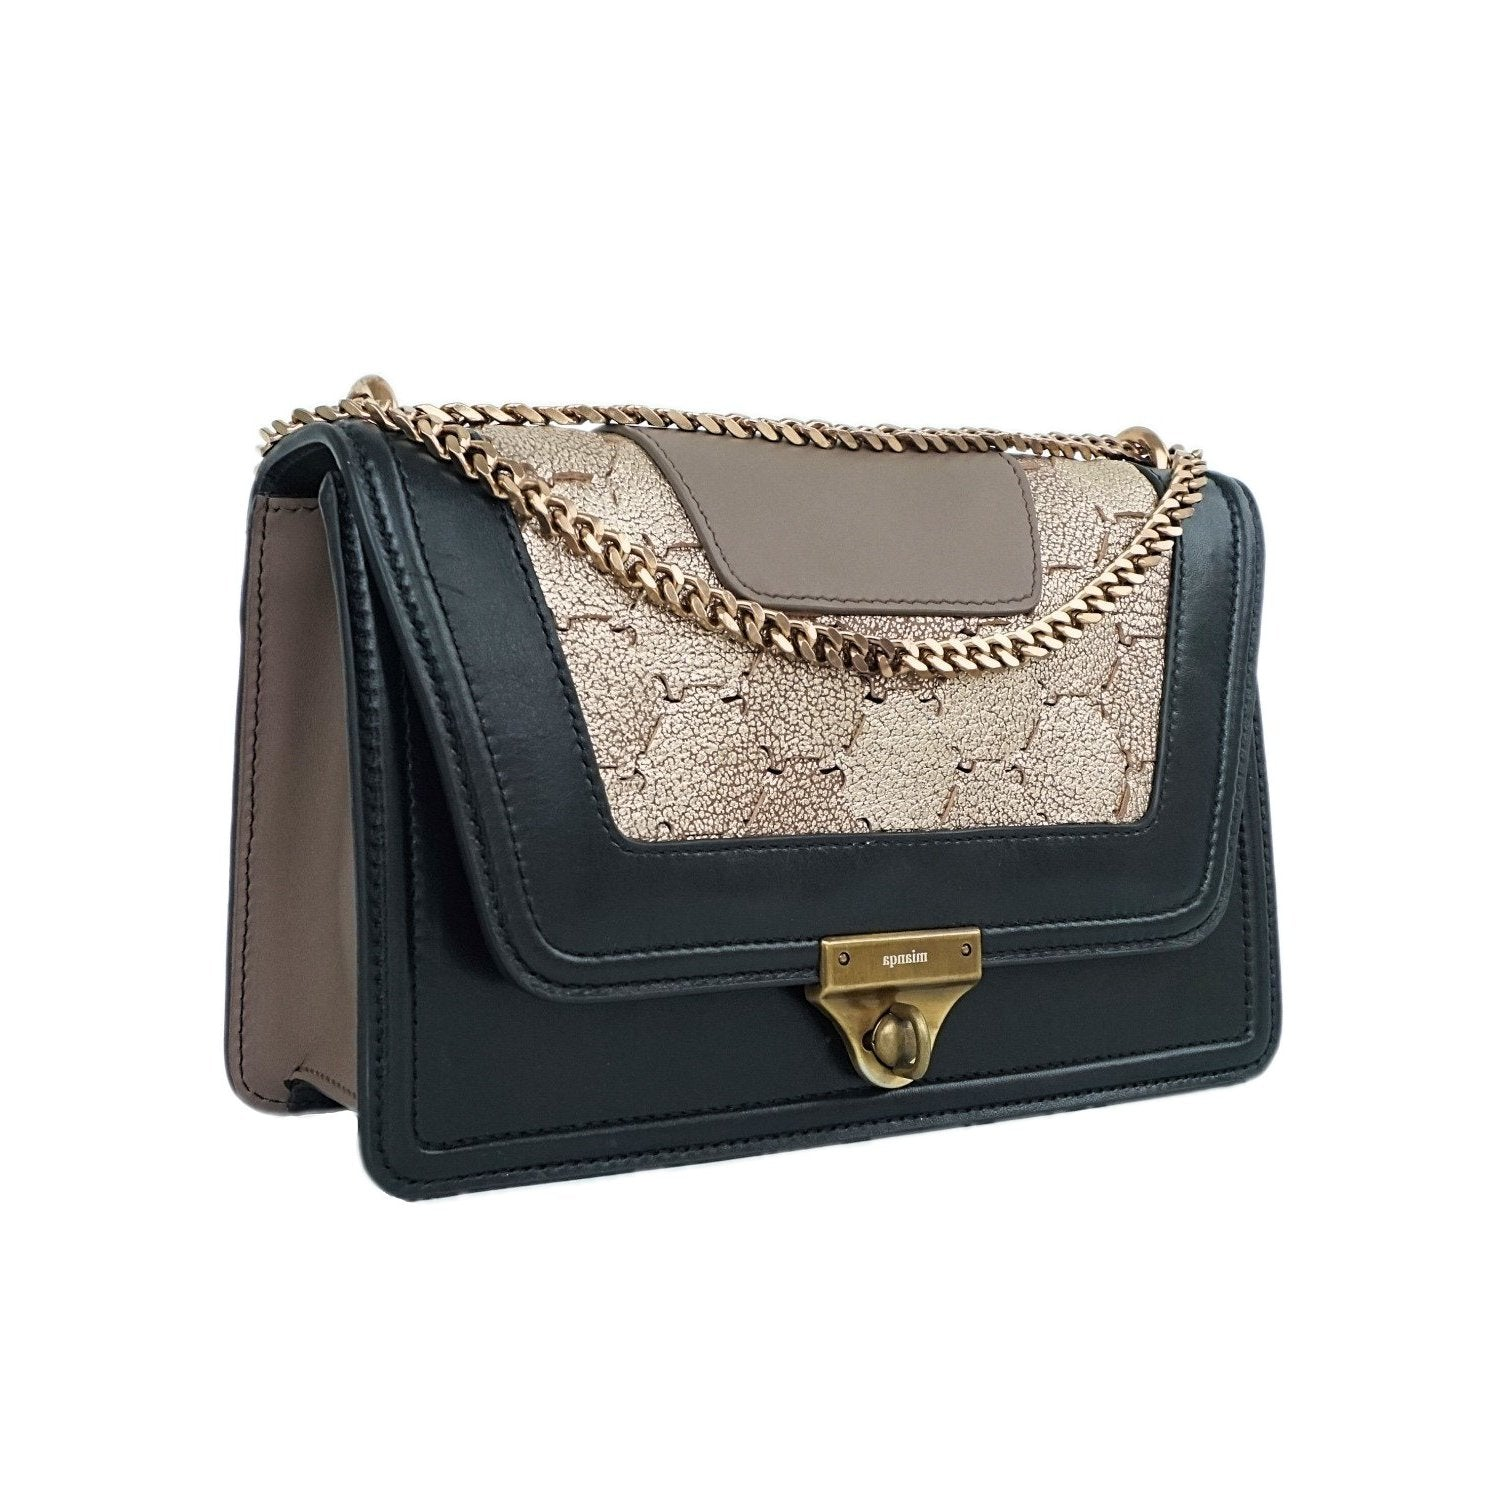 M U A L L A | Leather Shoulder Bag Black/Gold